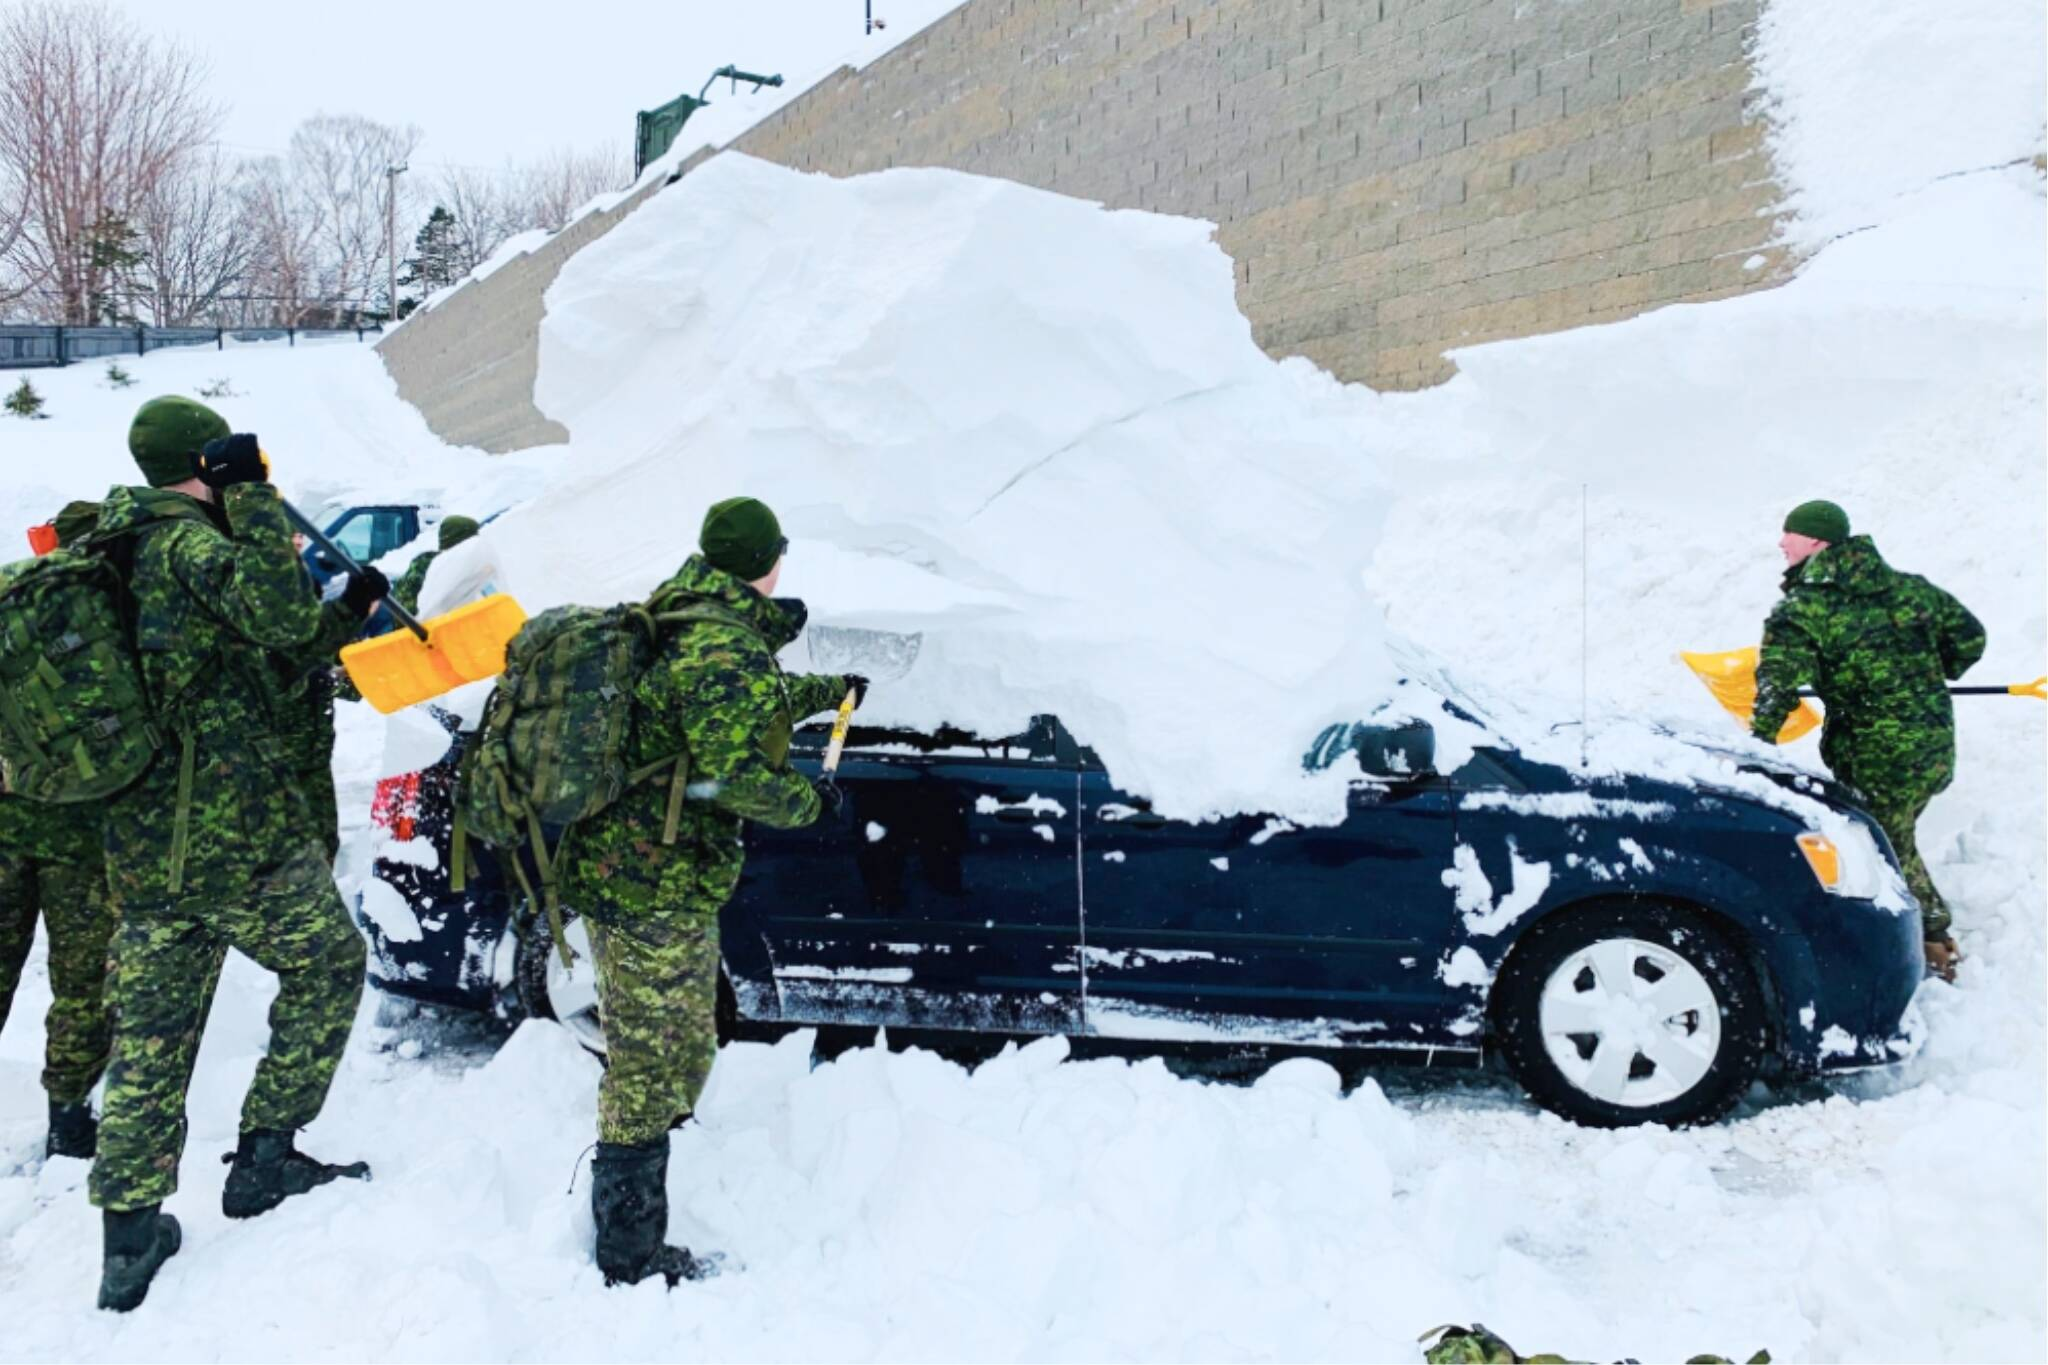 newfoundland canadian armed forces